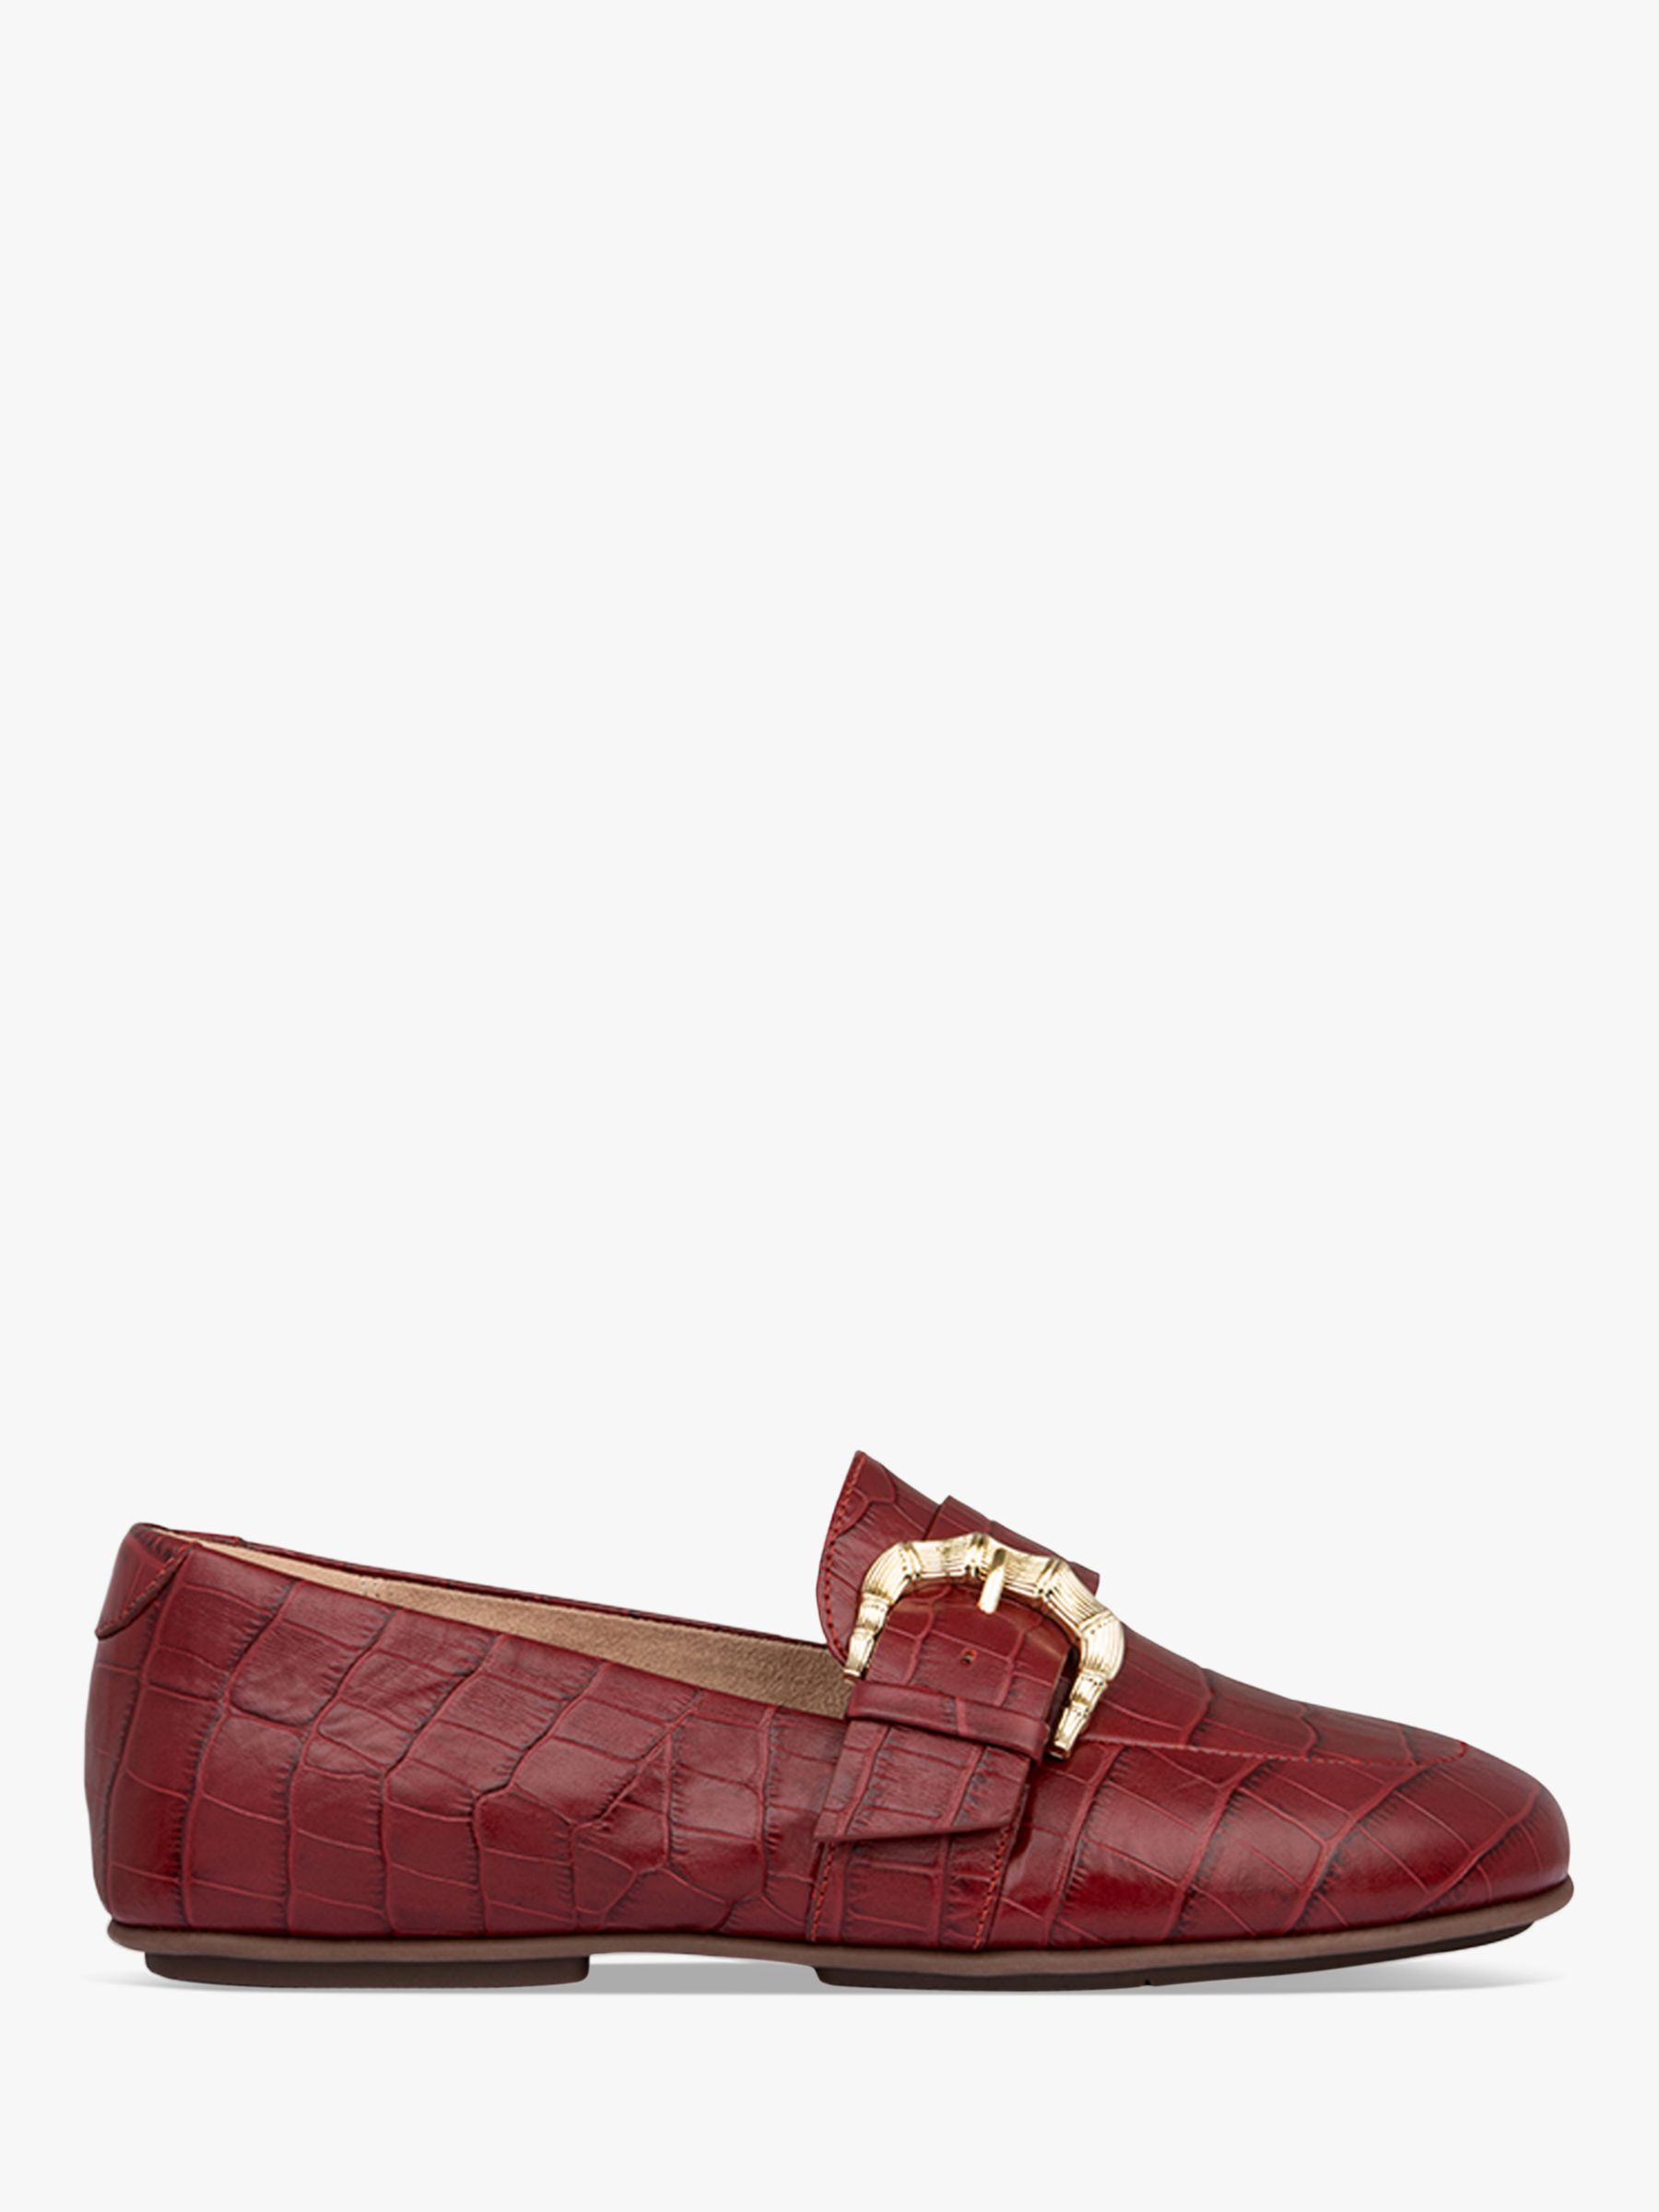 Fitflop FitFlop Lisbet Croc Embossed Leather Loafers